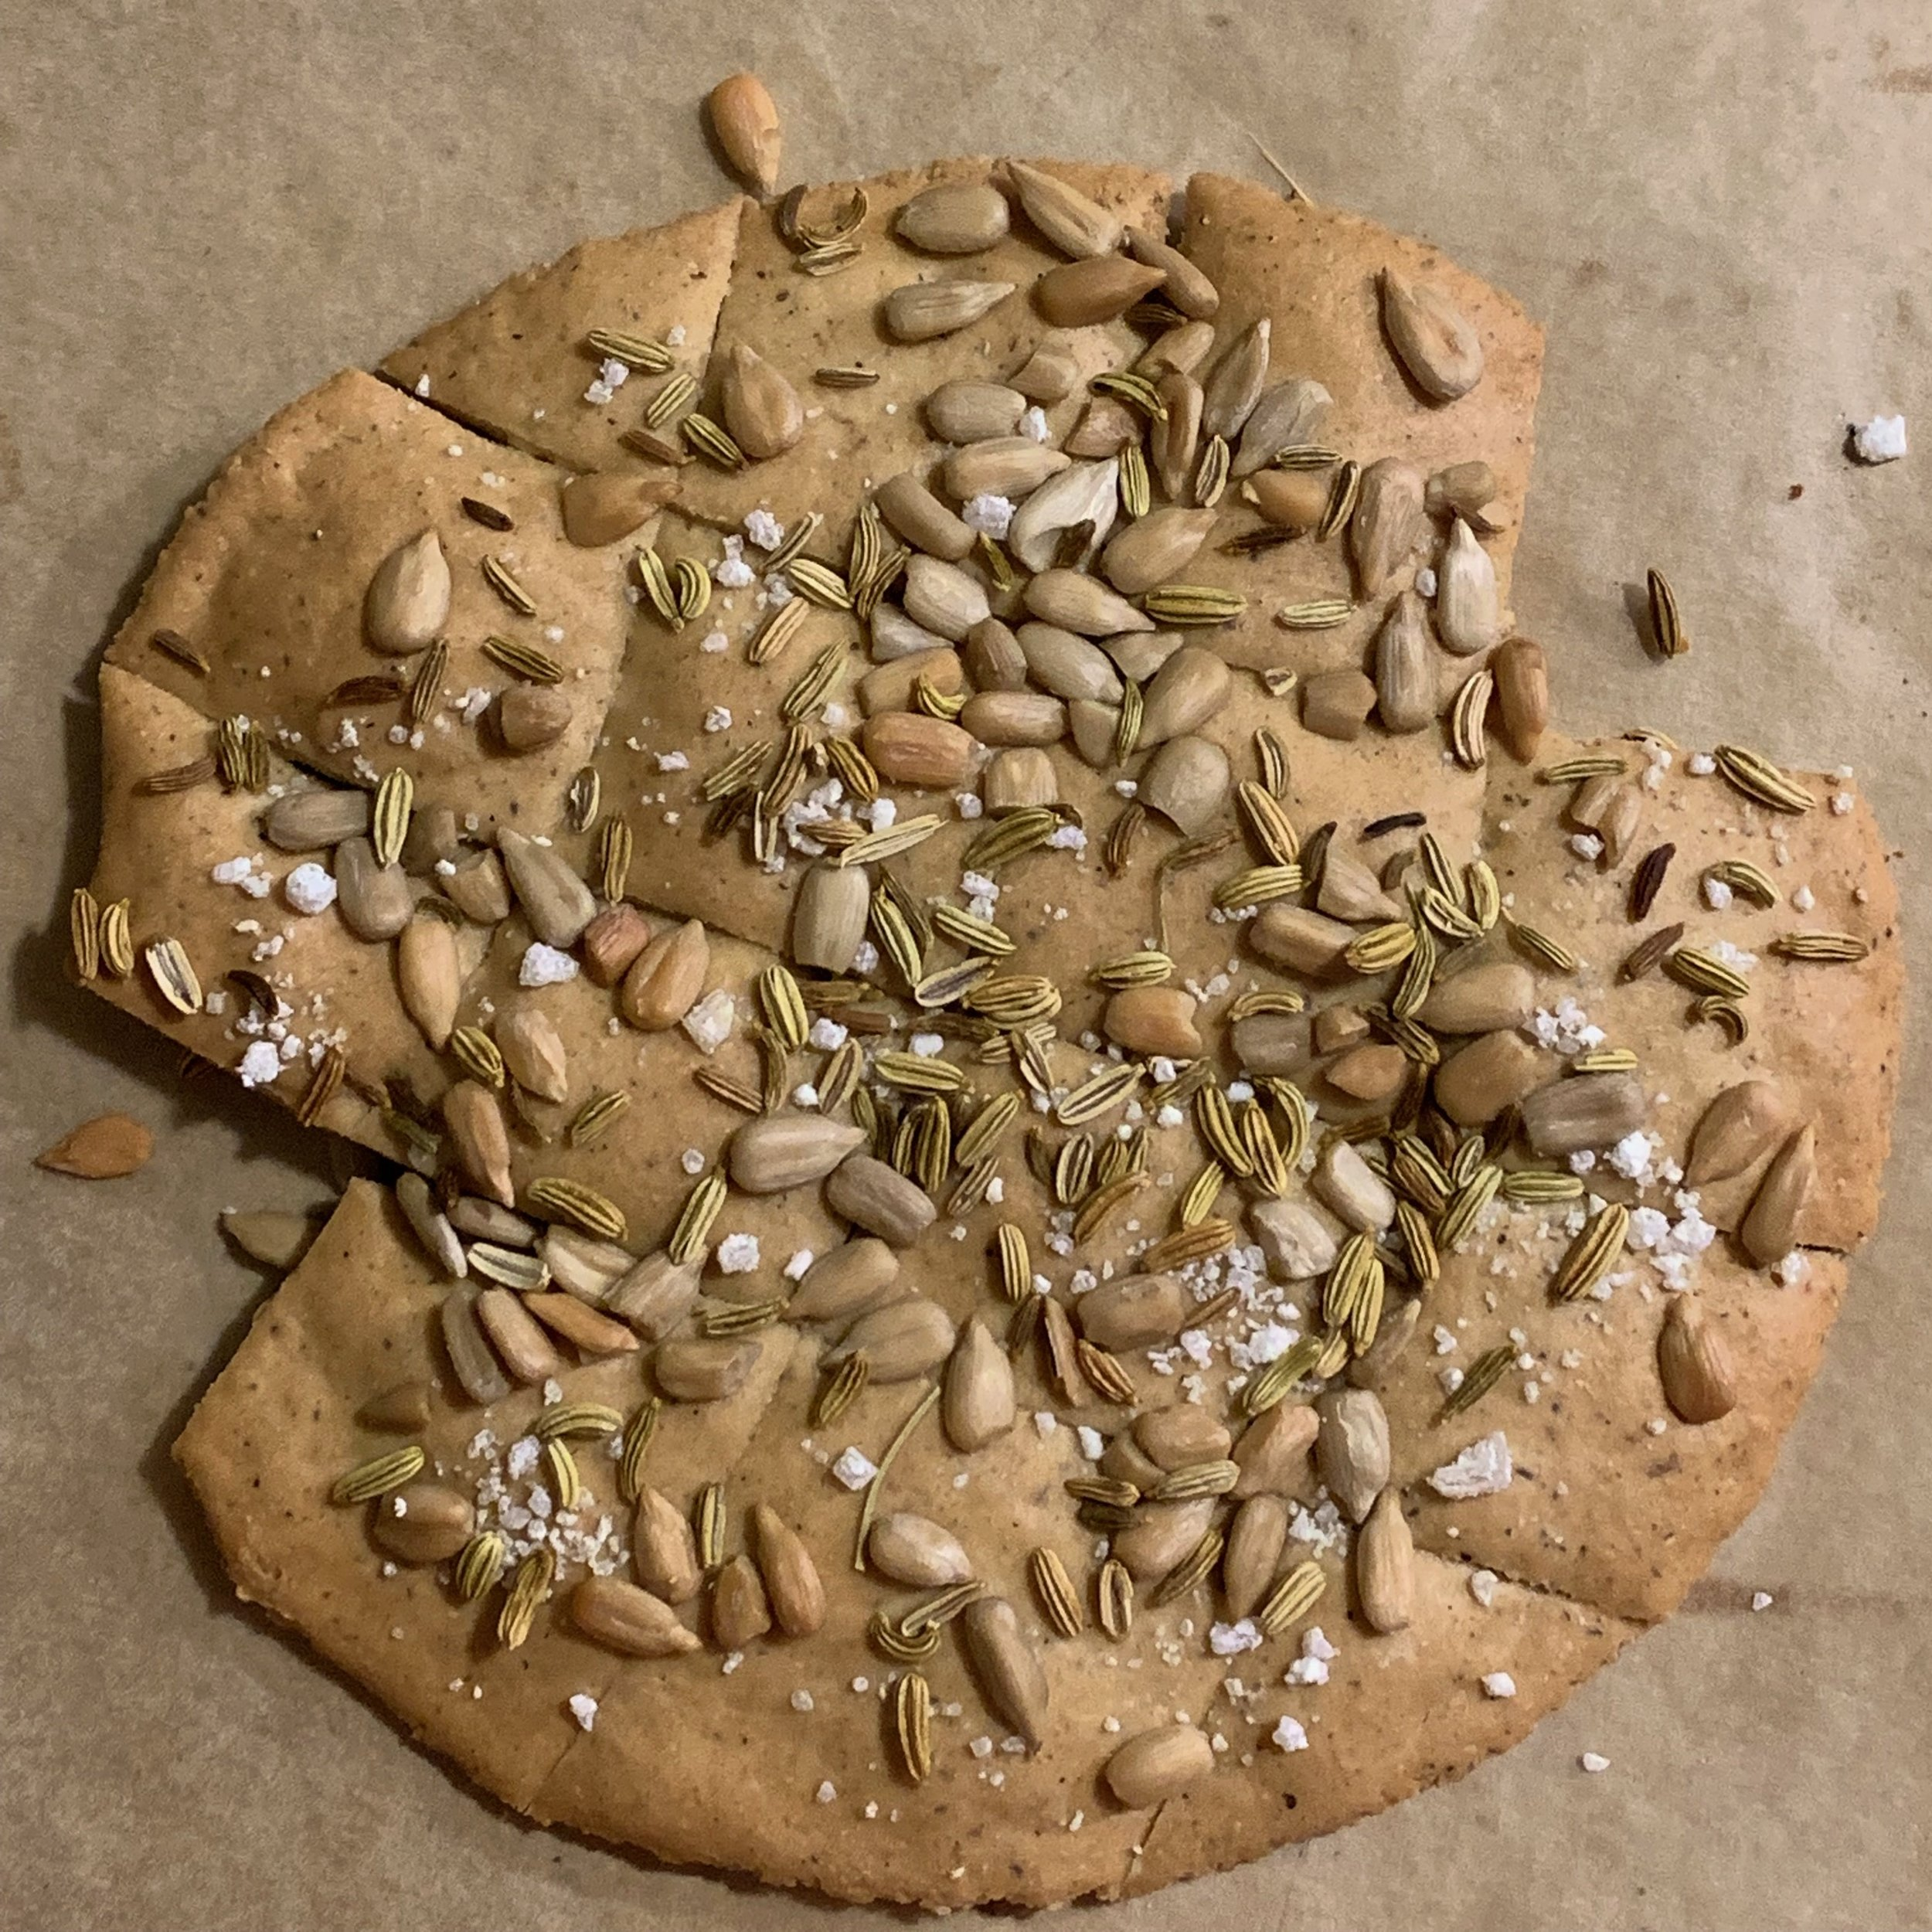 topped with sunflower seeds, salt and sweet nice - my favorite